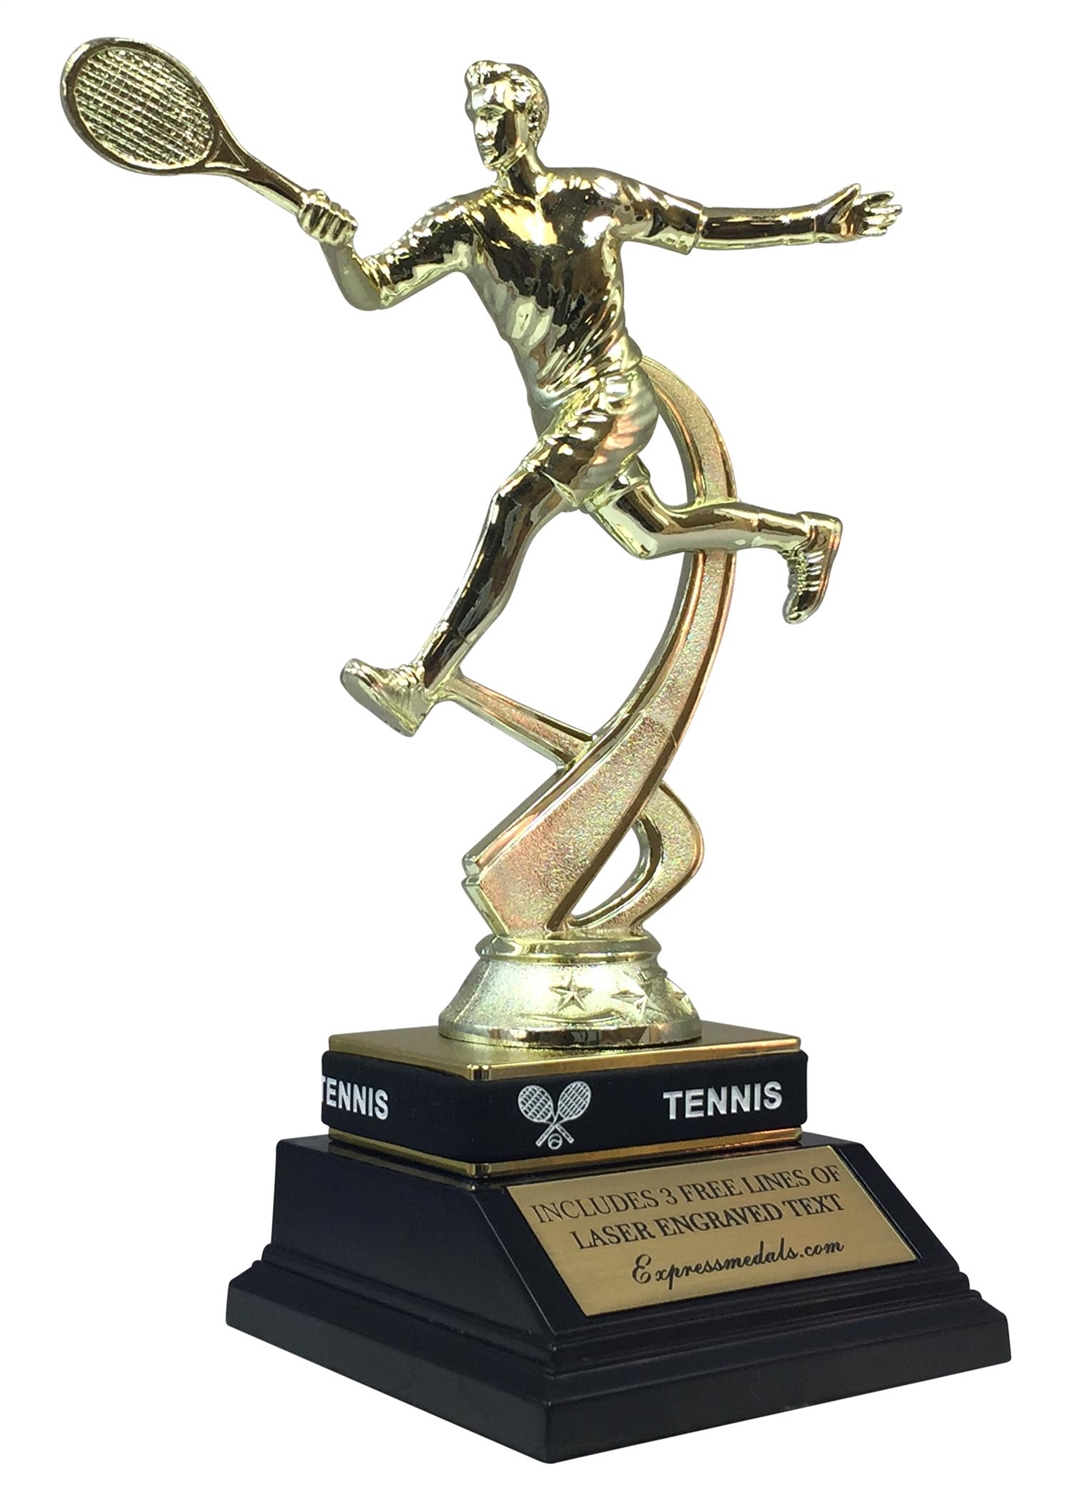 Male Tennis Trophy with Wrist Band